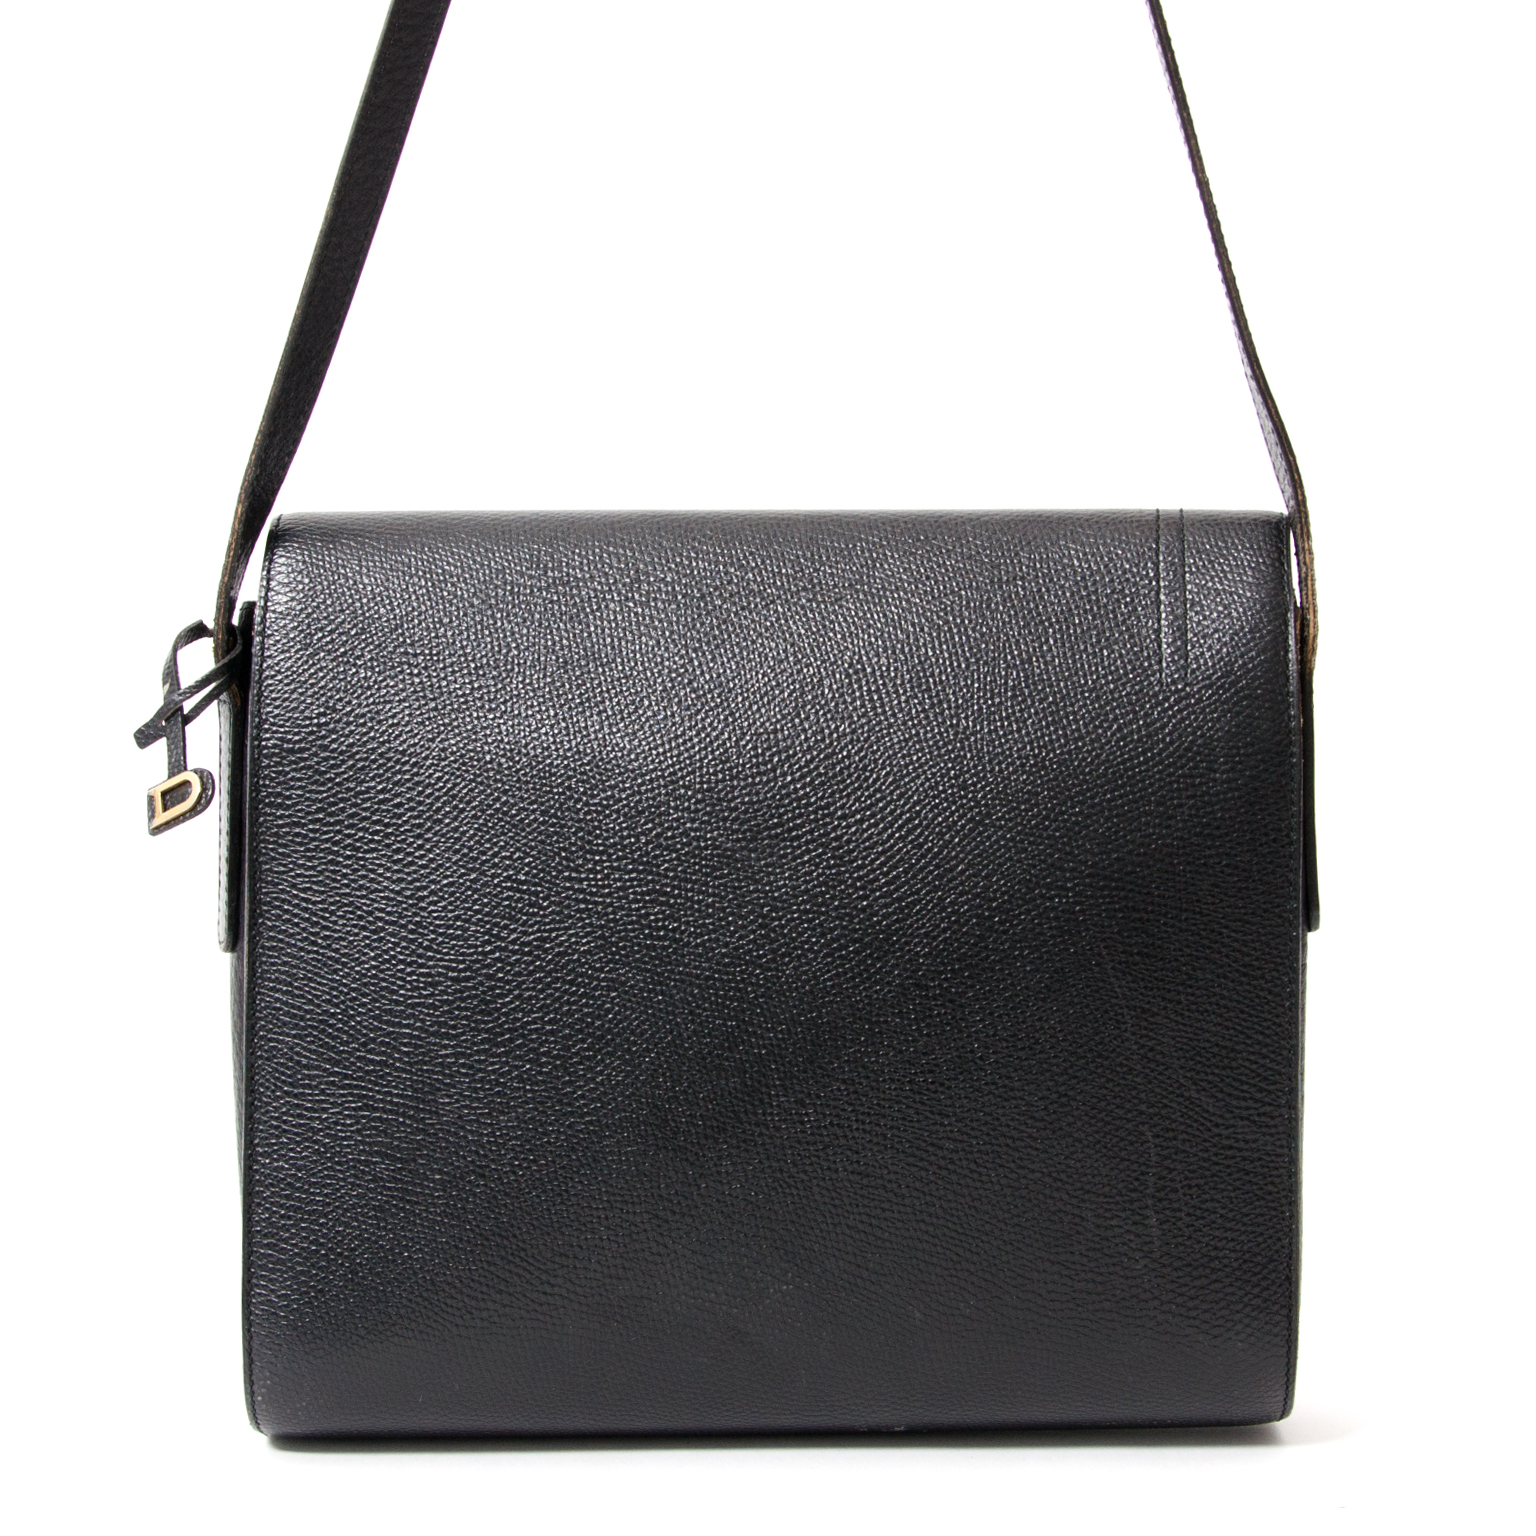 e8628ff6f49e ... authentieke zwart leren handtas Looking for an authentic black leather shoulder  bag from Delvaux? Labellov offers a wide variety